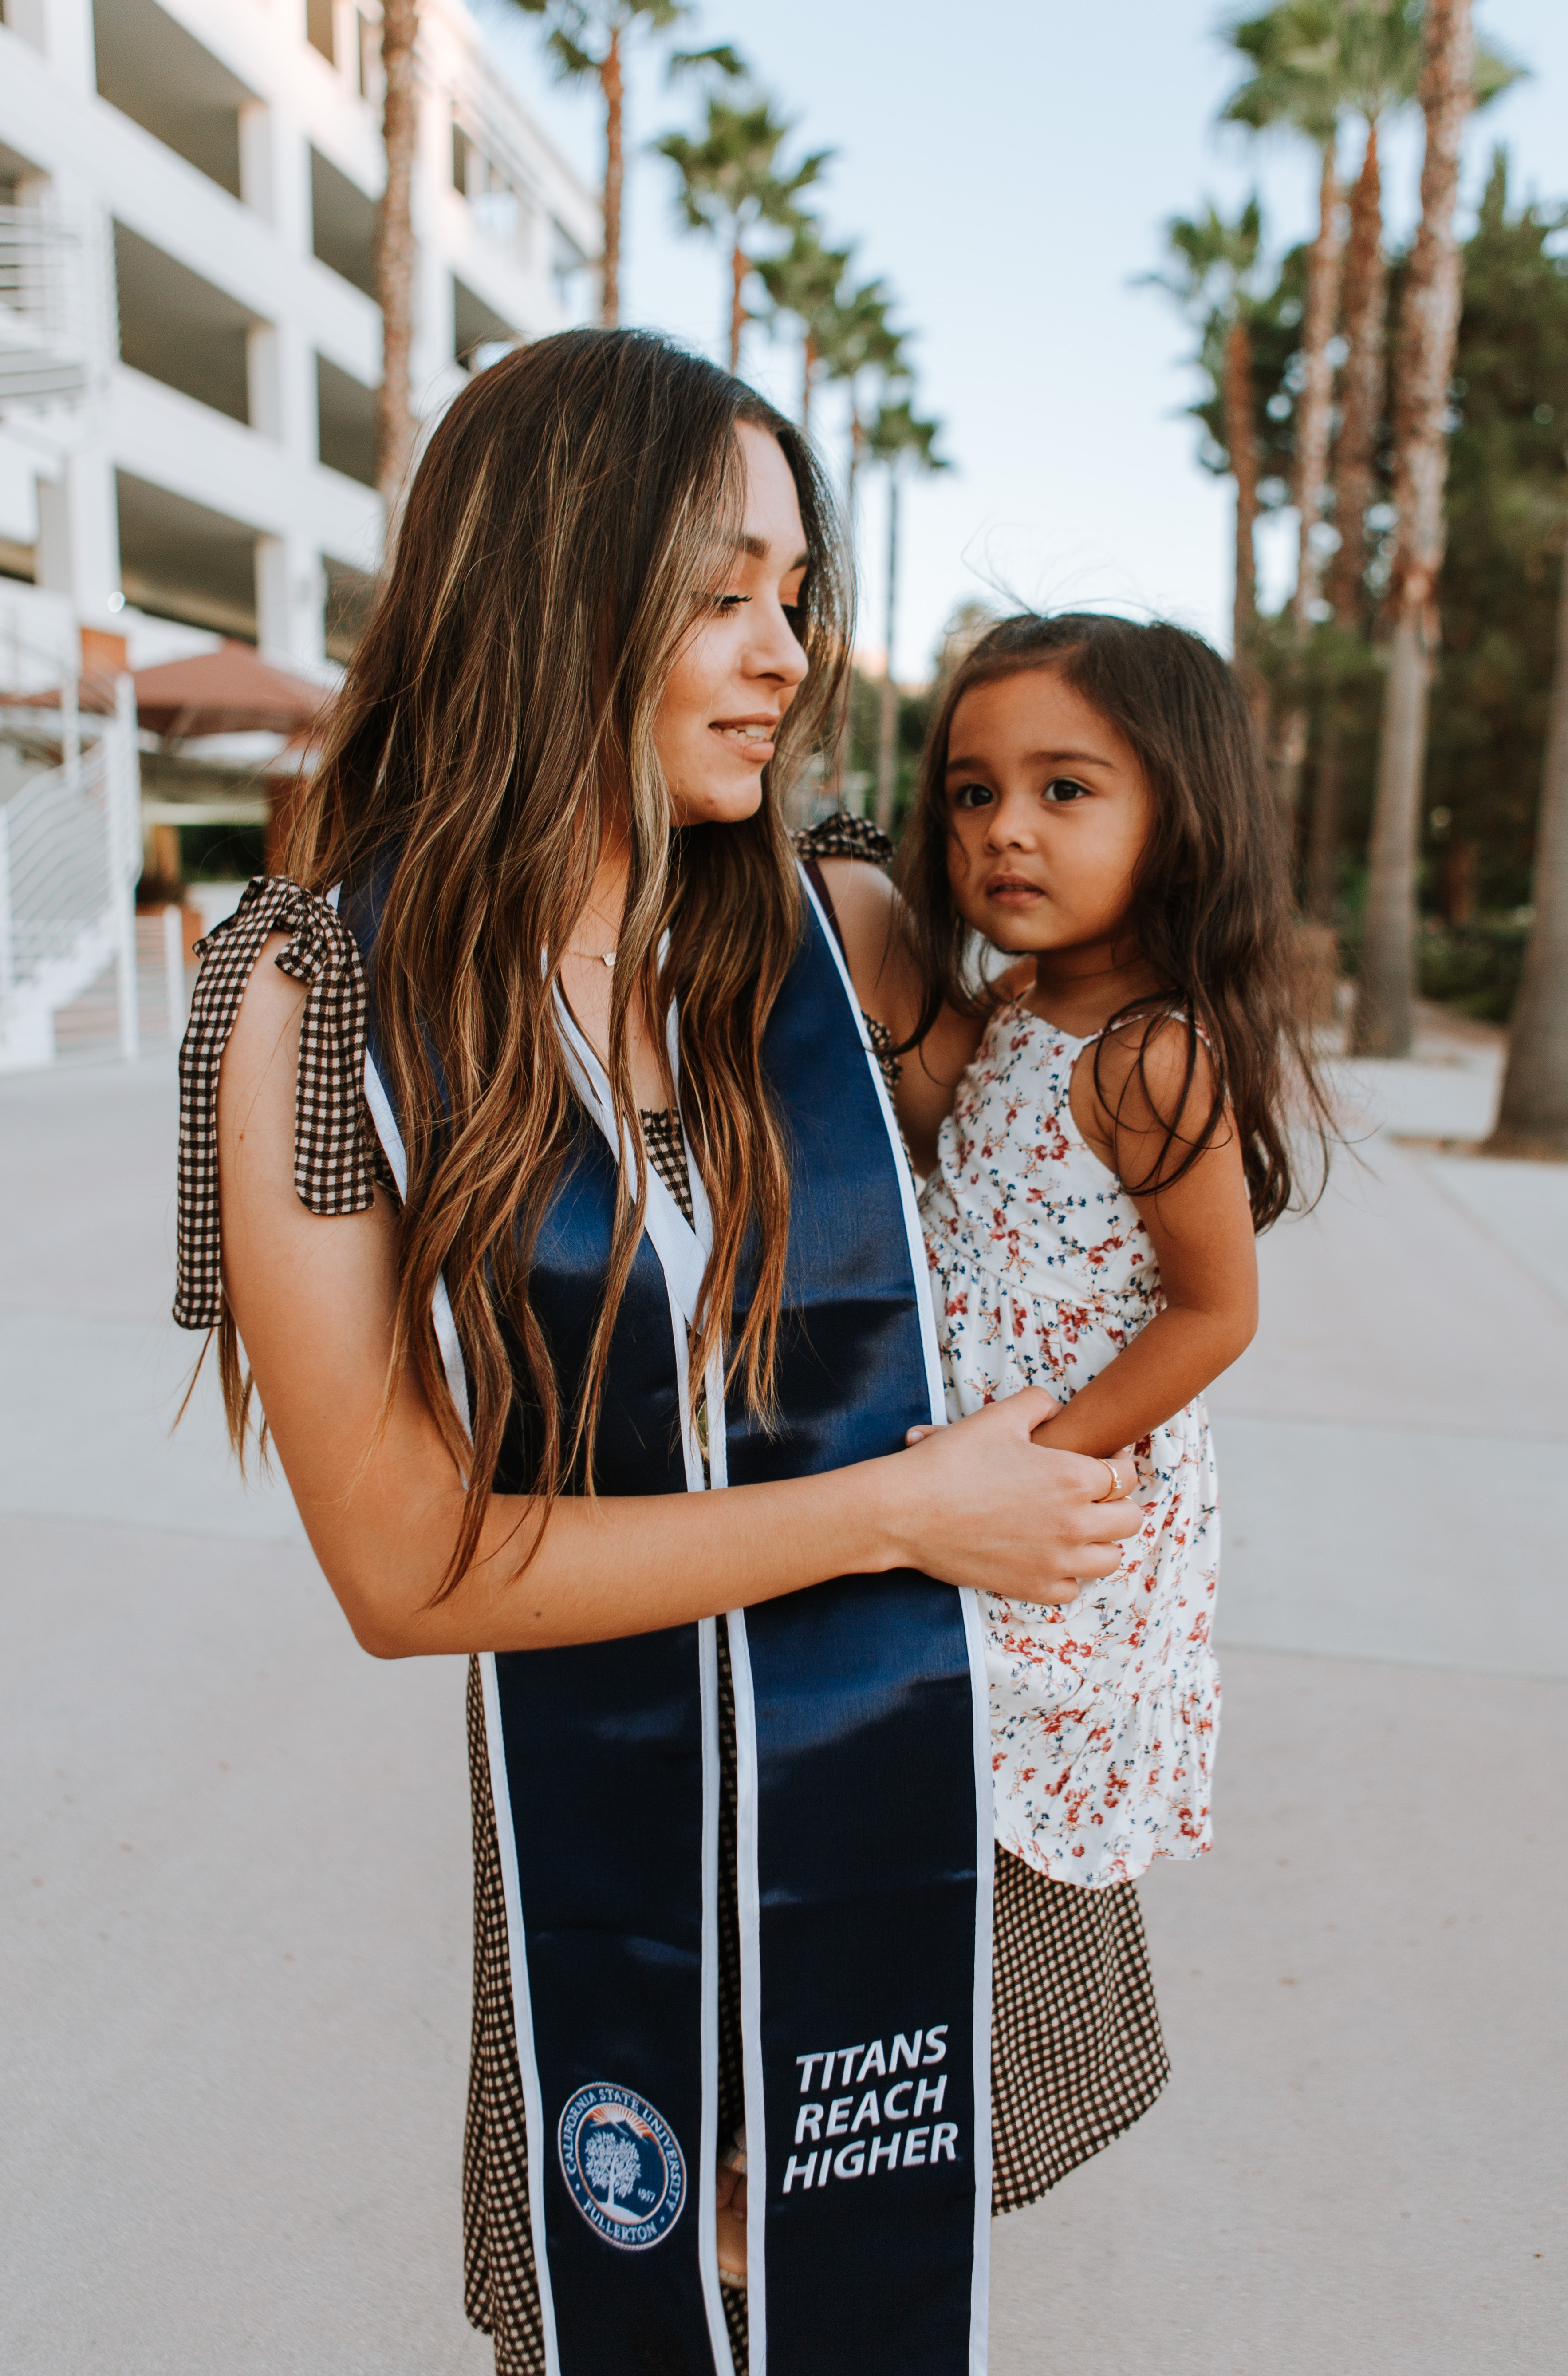 Latina woman graduate holding a toddler child on her hip